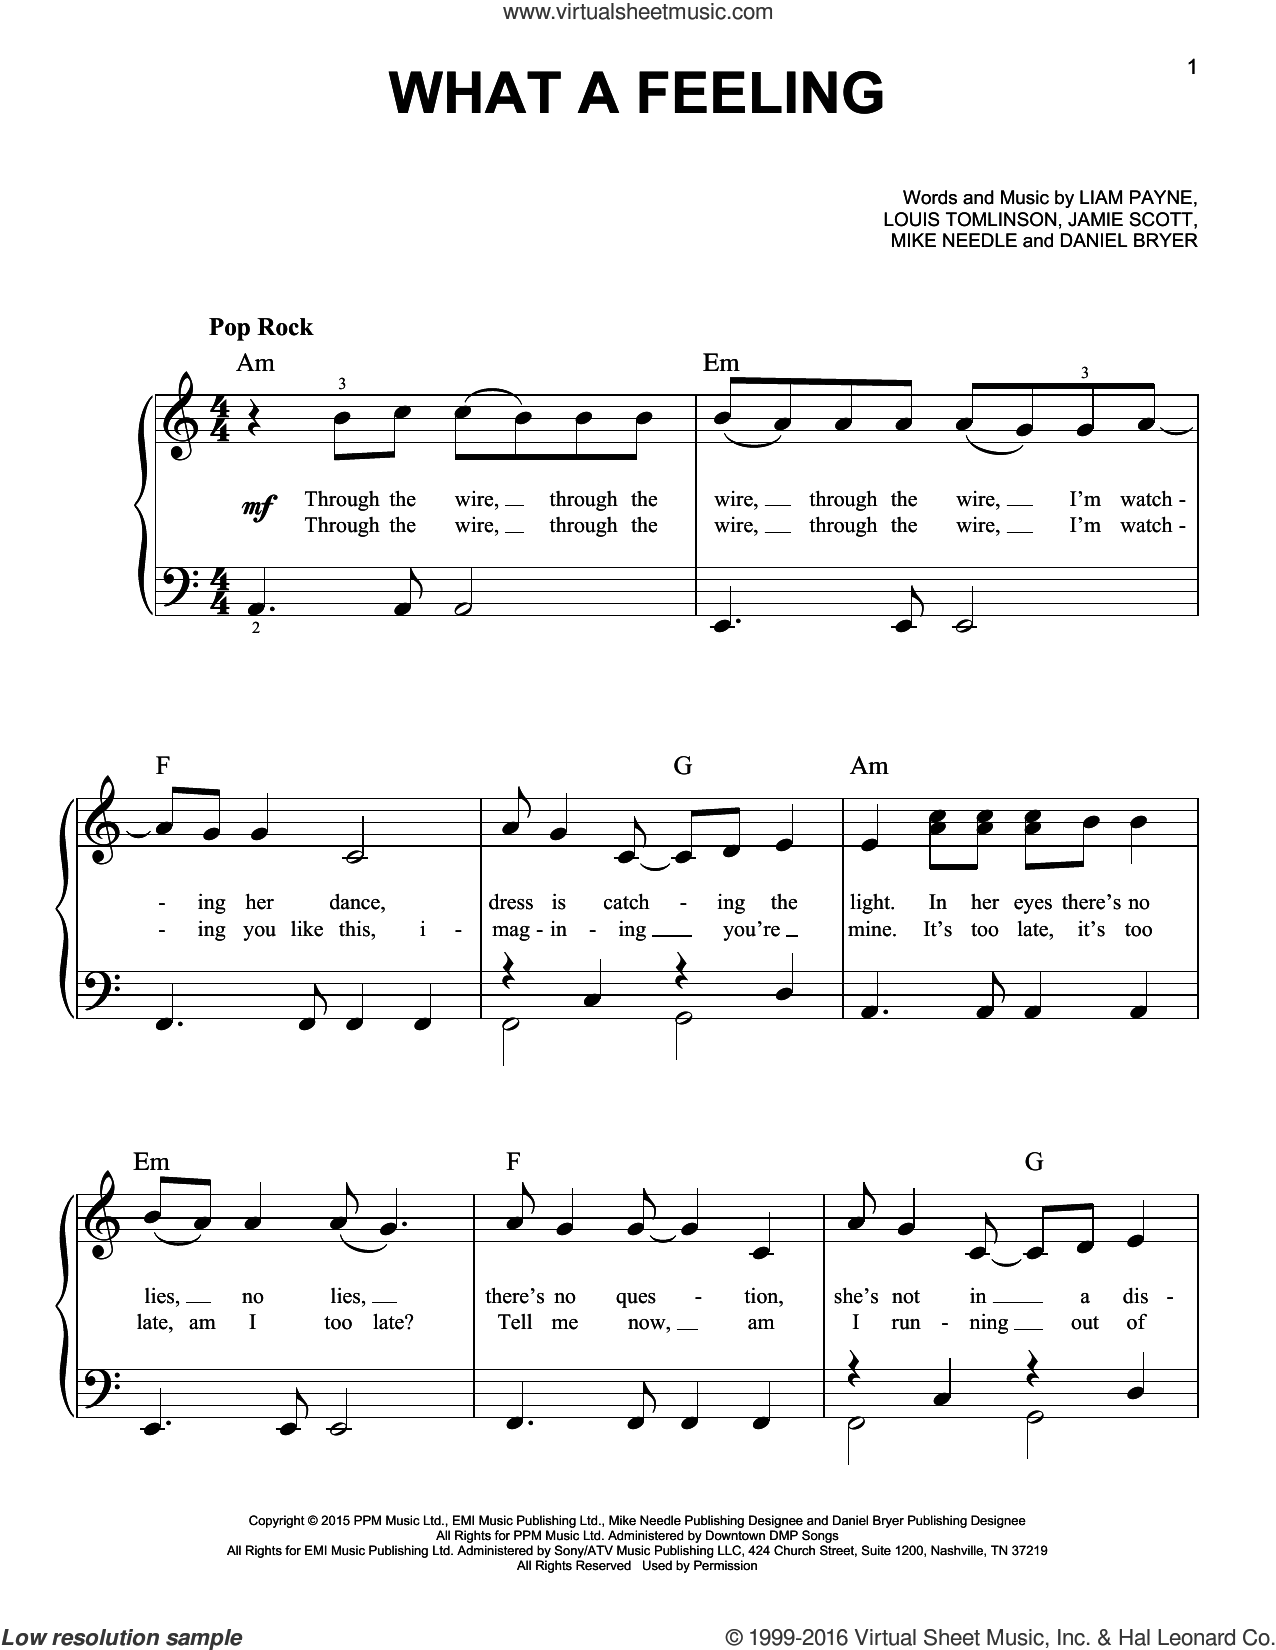 What A Feeling sheet music for piano solo by One Direction, Daniel Bryer, Jamie Scott, Liam Payne, Louis Tomlinson and Mike Needle, easy skill level